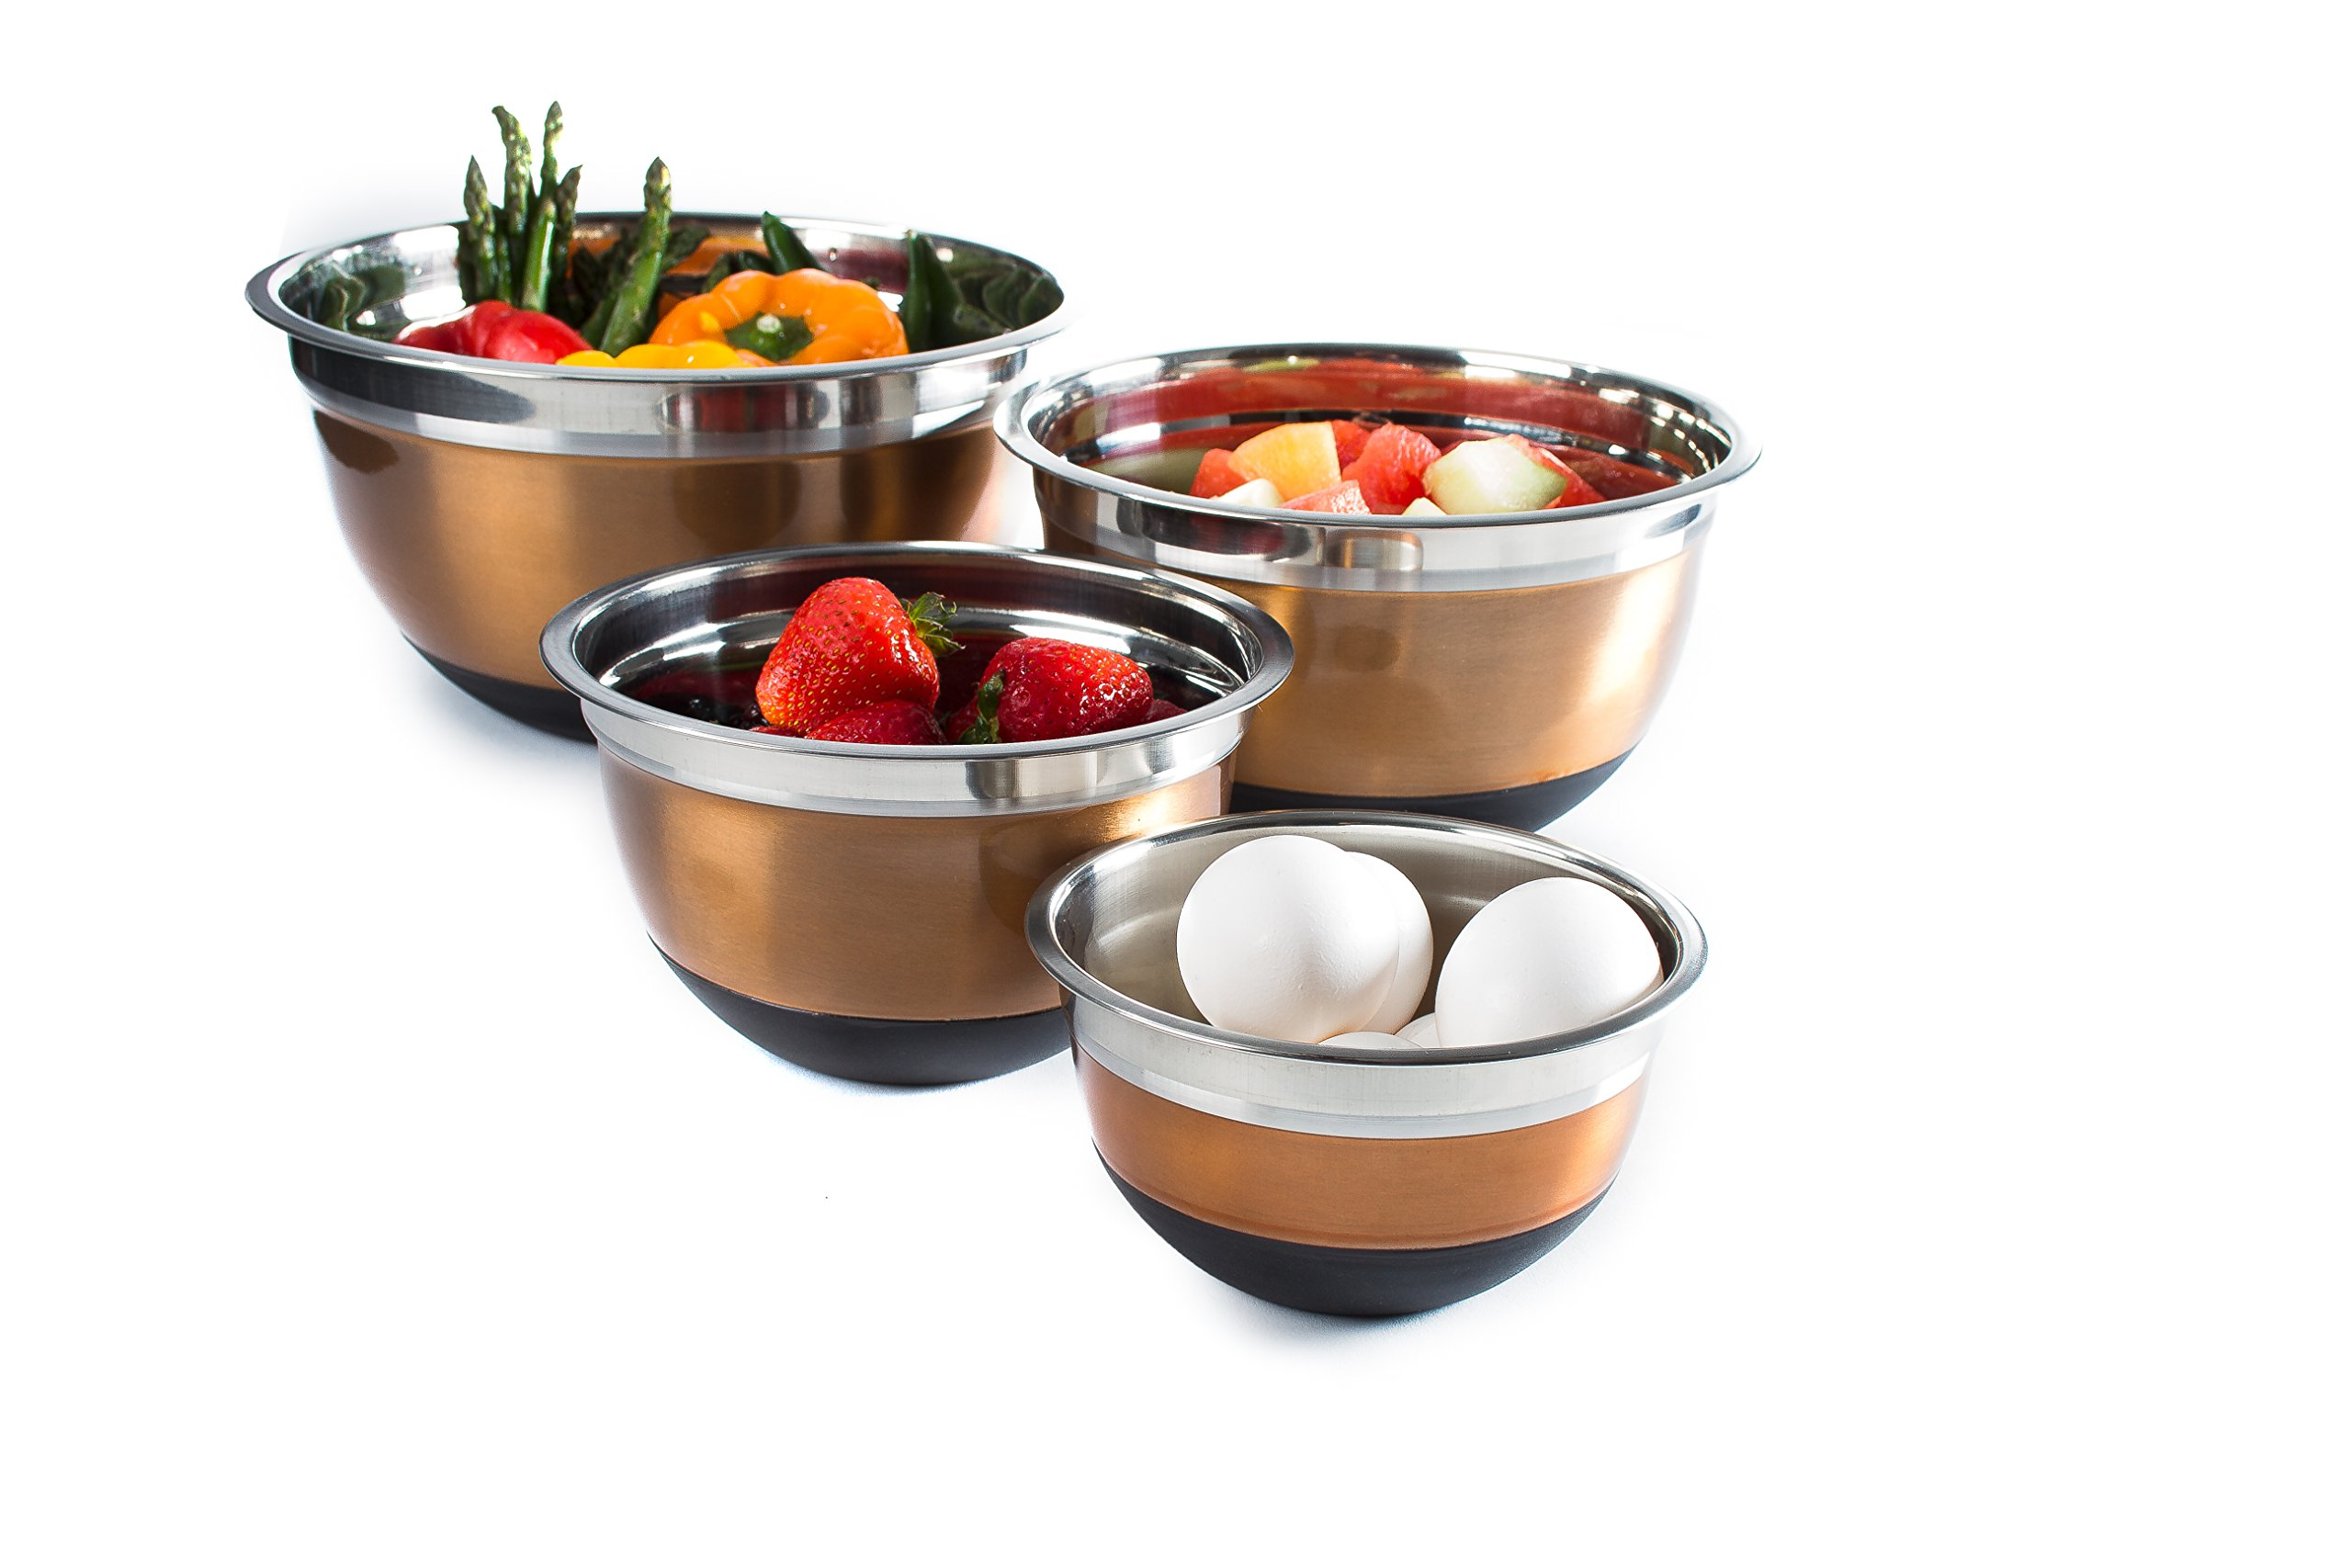 4 Pc Copper Brushed Mixing Bowl Set w/Silicone Nonskid Base - Stainless Steel Flat Base Serving Bowl or Prep Bowls